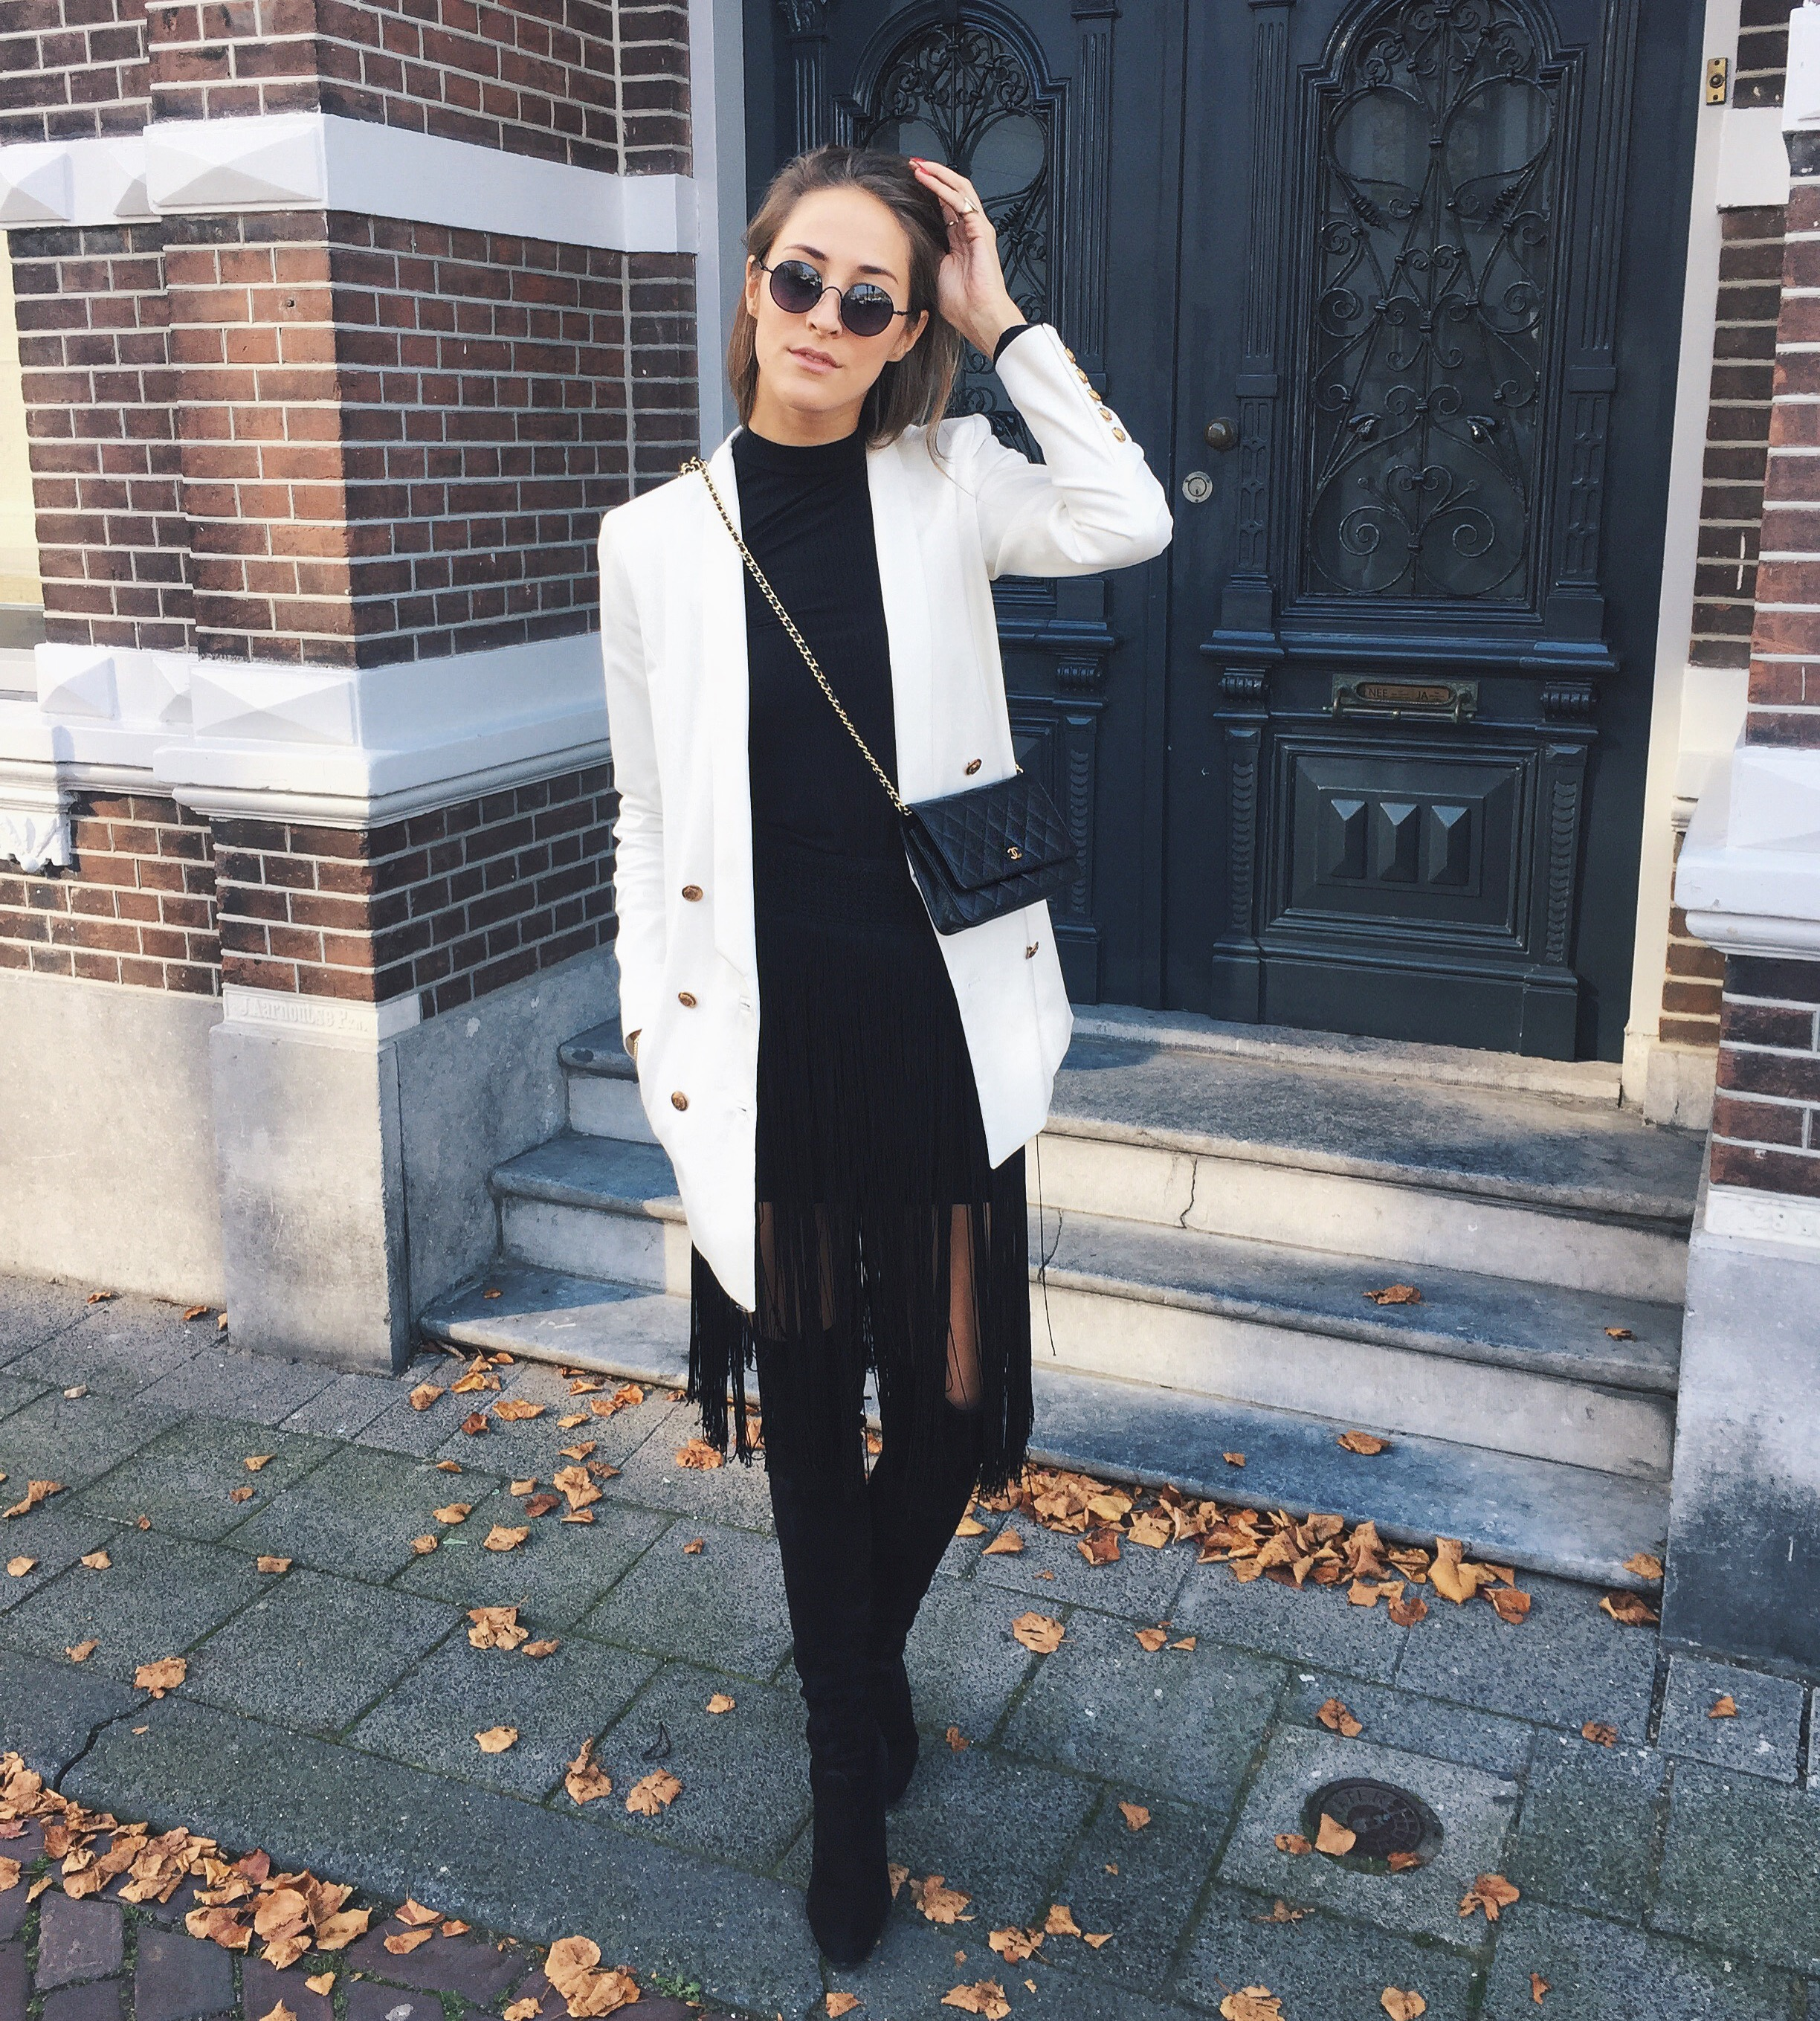 linda_tsetis_worlds_affair_ootd_fashion